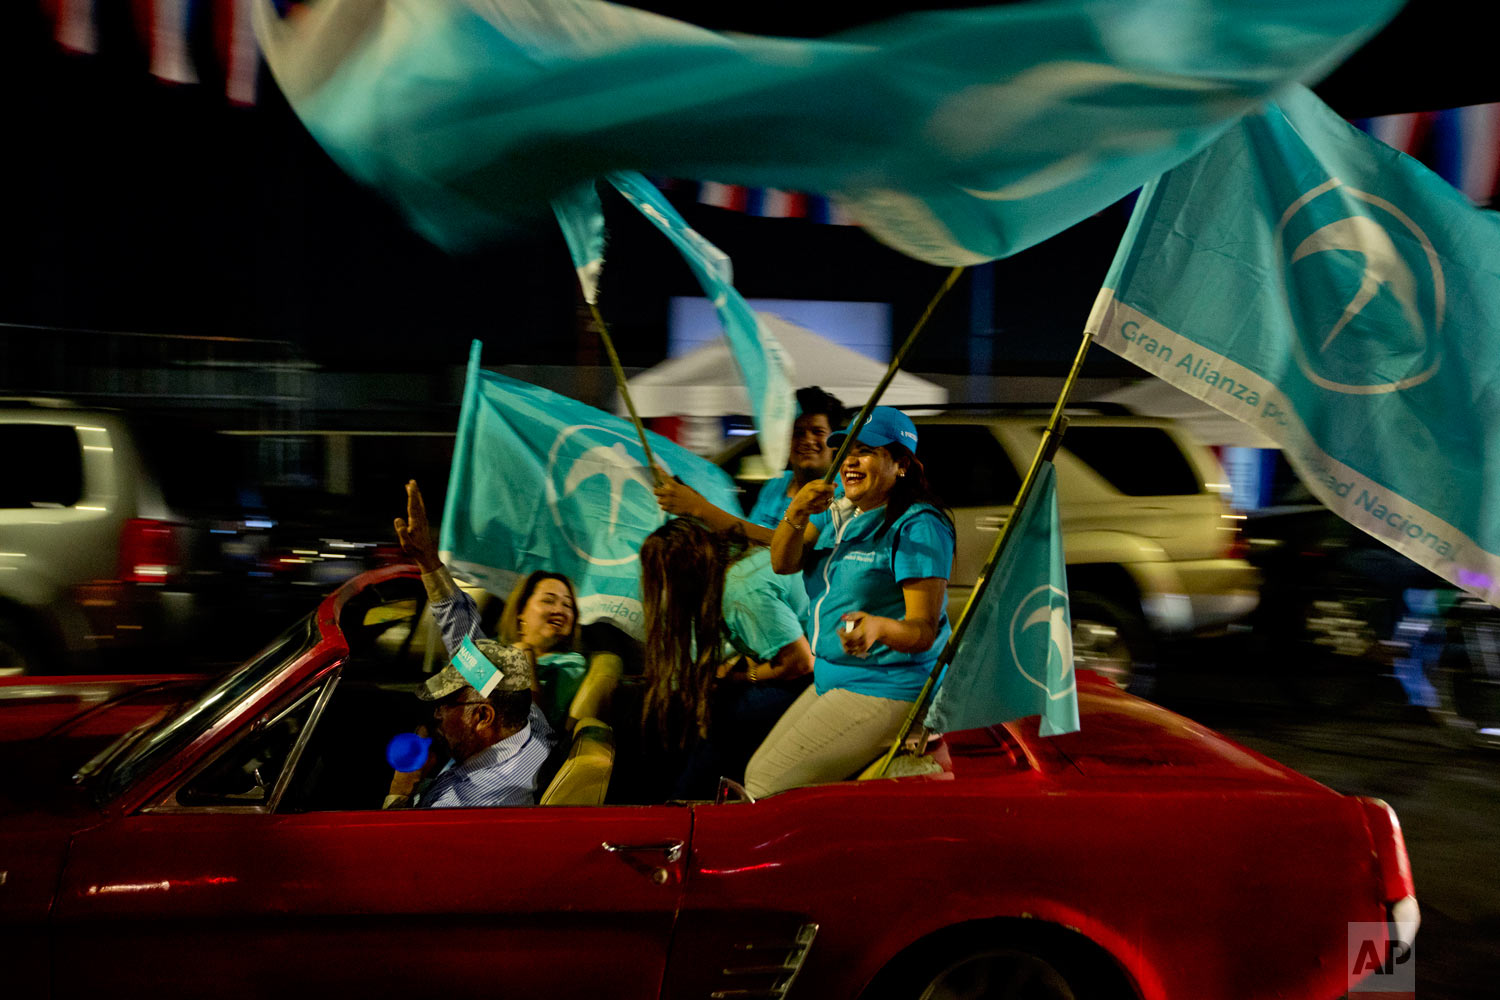 Supporters of presidential frontrunner Nayib Bukele, of the Grand National Alliance for Unity, GANA, rally in San Salvador, El Salvador, Jan. 30, 2019. Bukele won the election on Feb. 3, breaking the three-decade hold on power of the country's two dominant parties. (AP Photo/Moises Castillo)